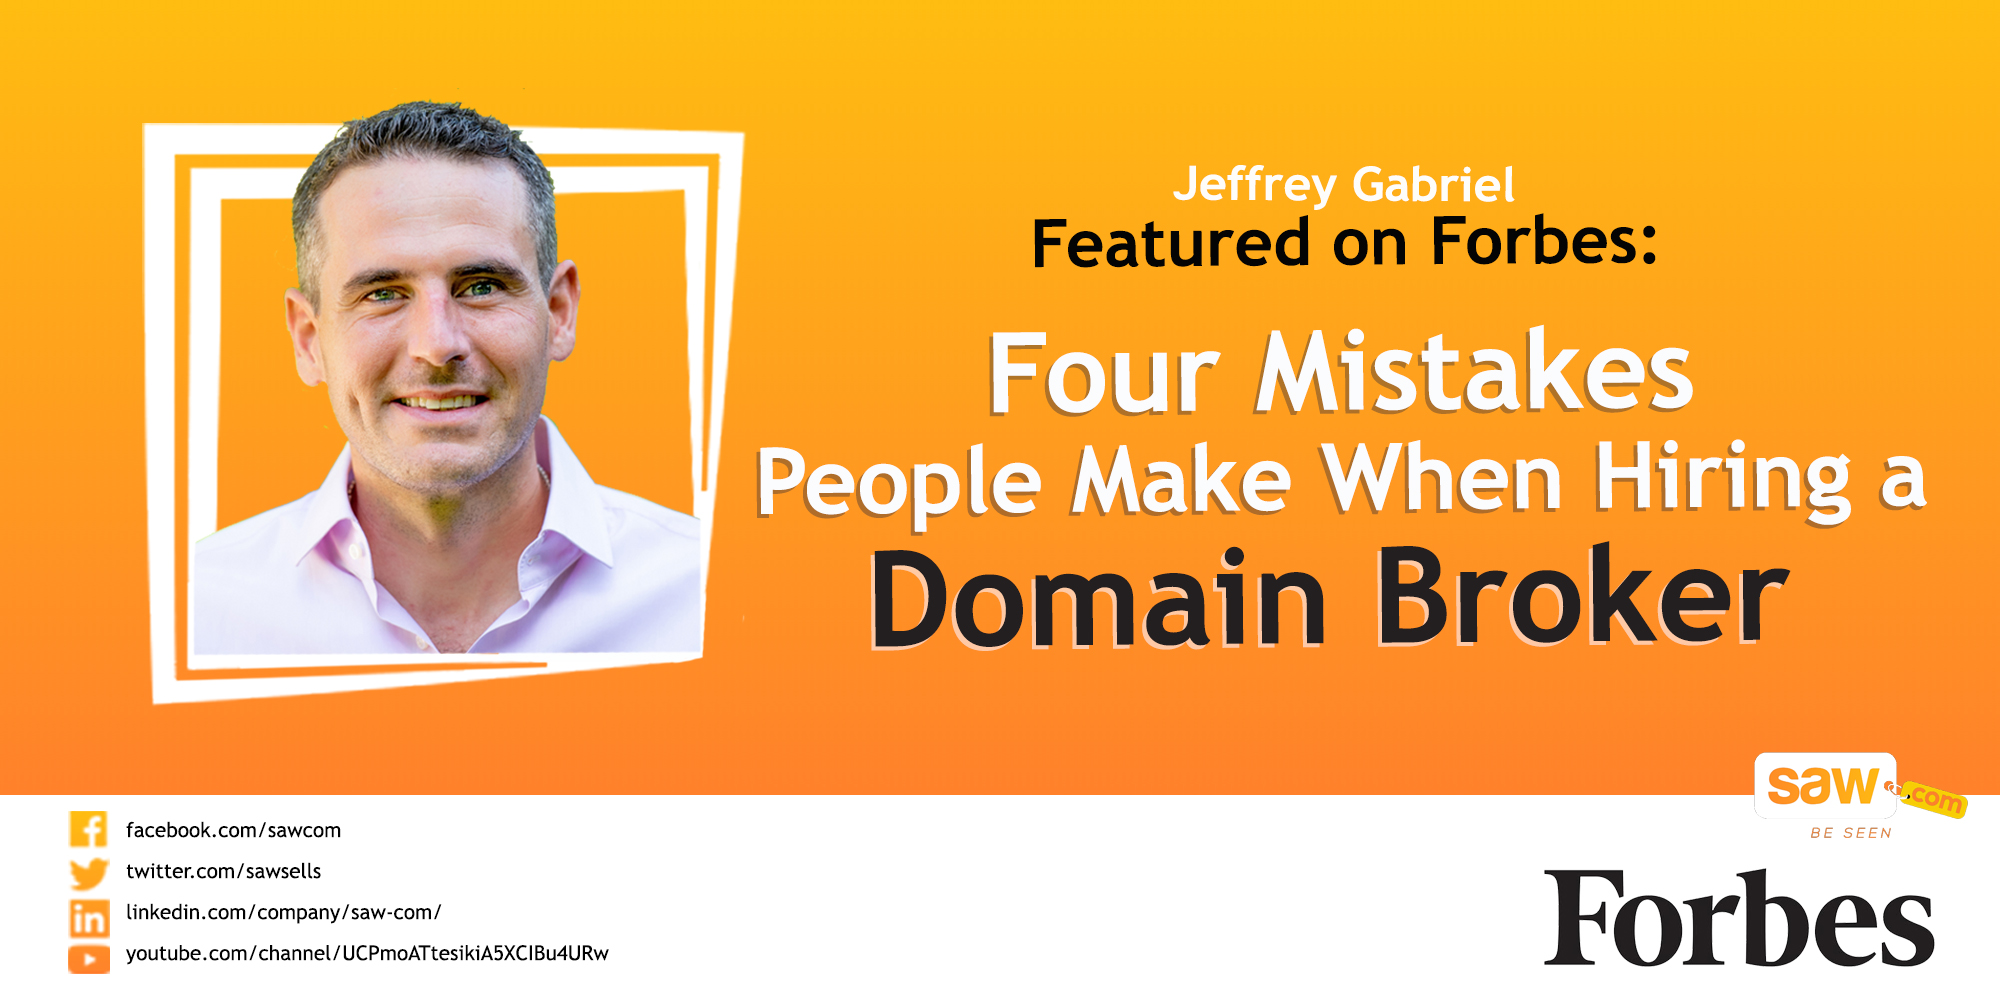 The 4 Mistakes People Make When Hiring a Domain Broker